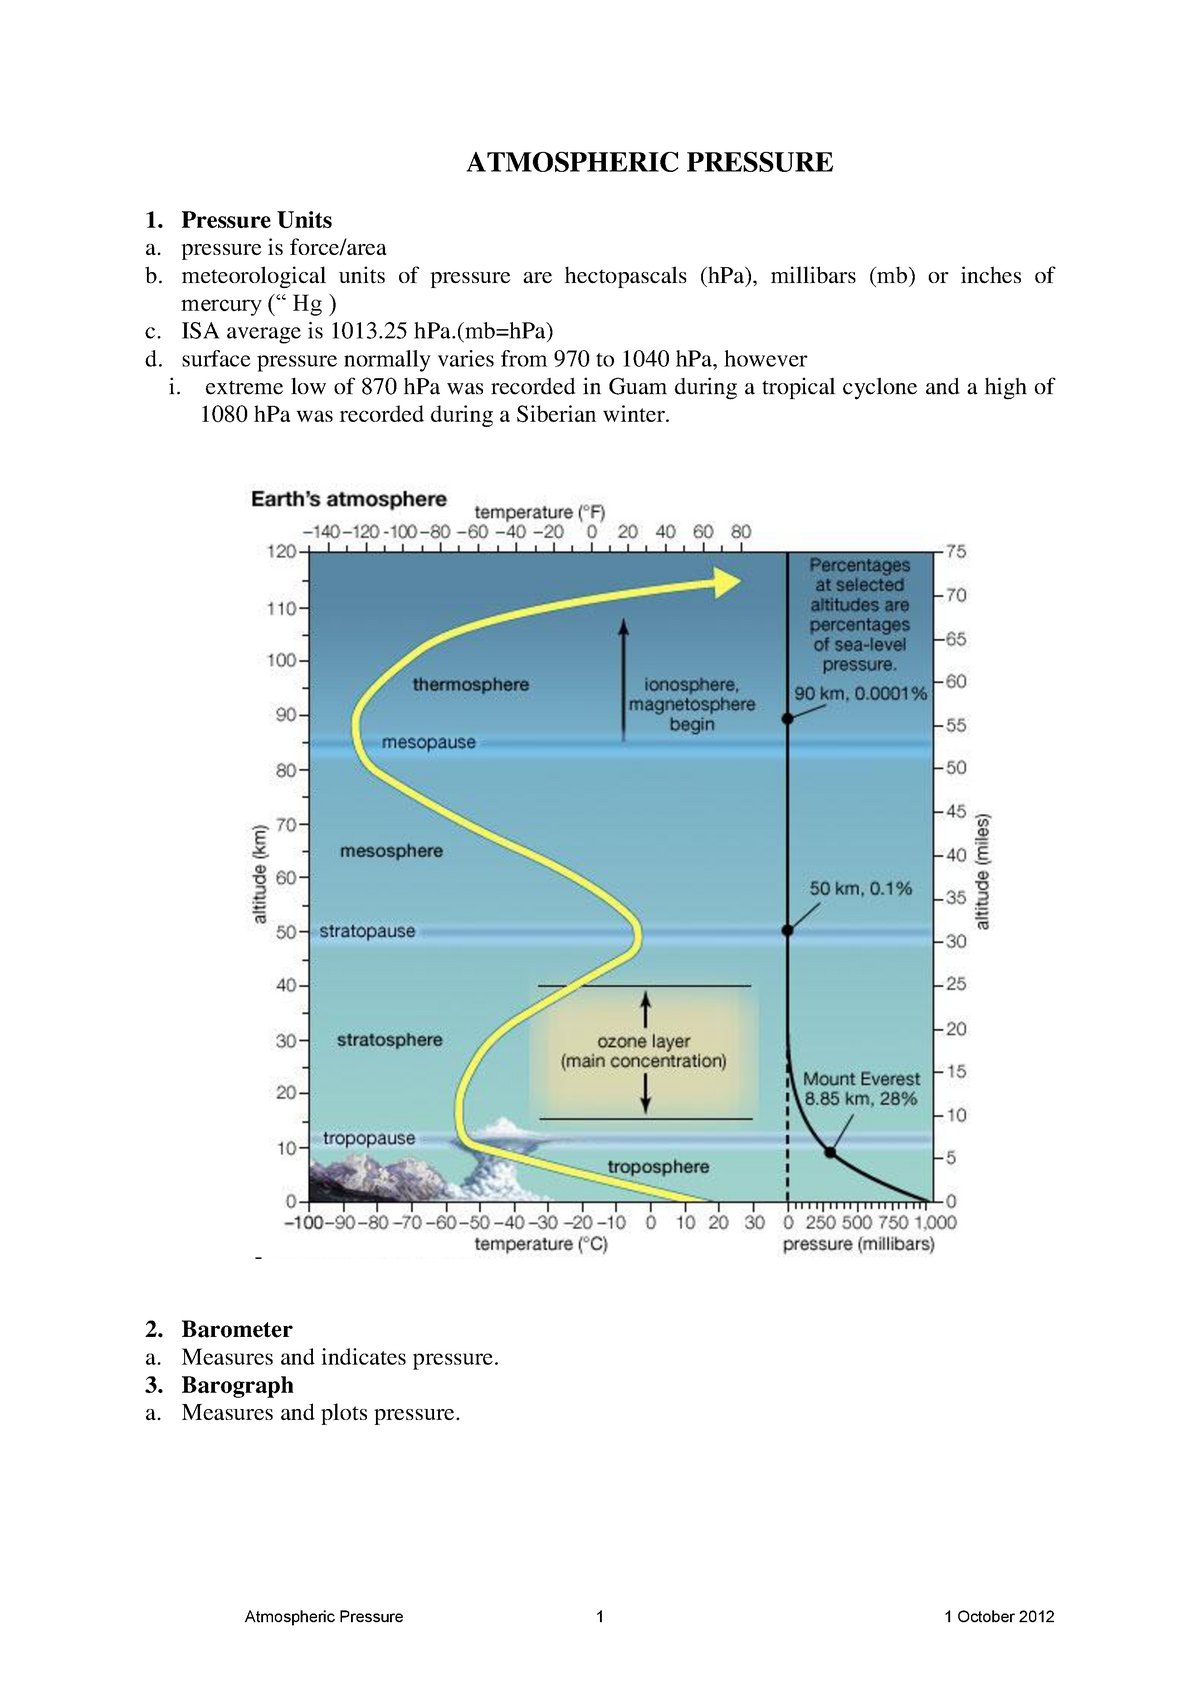 Atmospheric Pressure - Lecture notes, lectures 2 - 9 - StuDocu